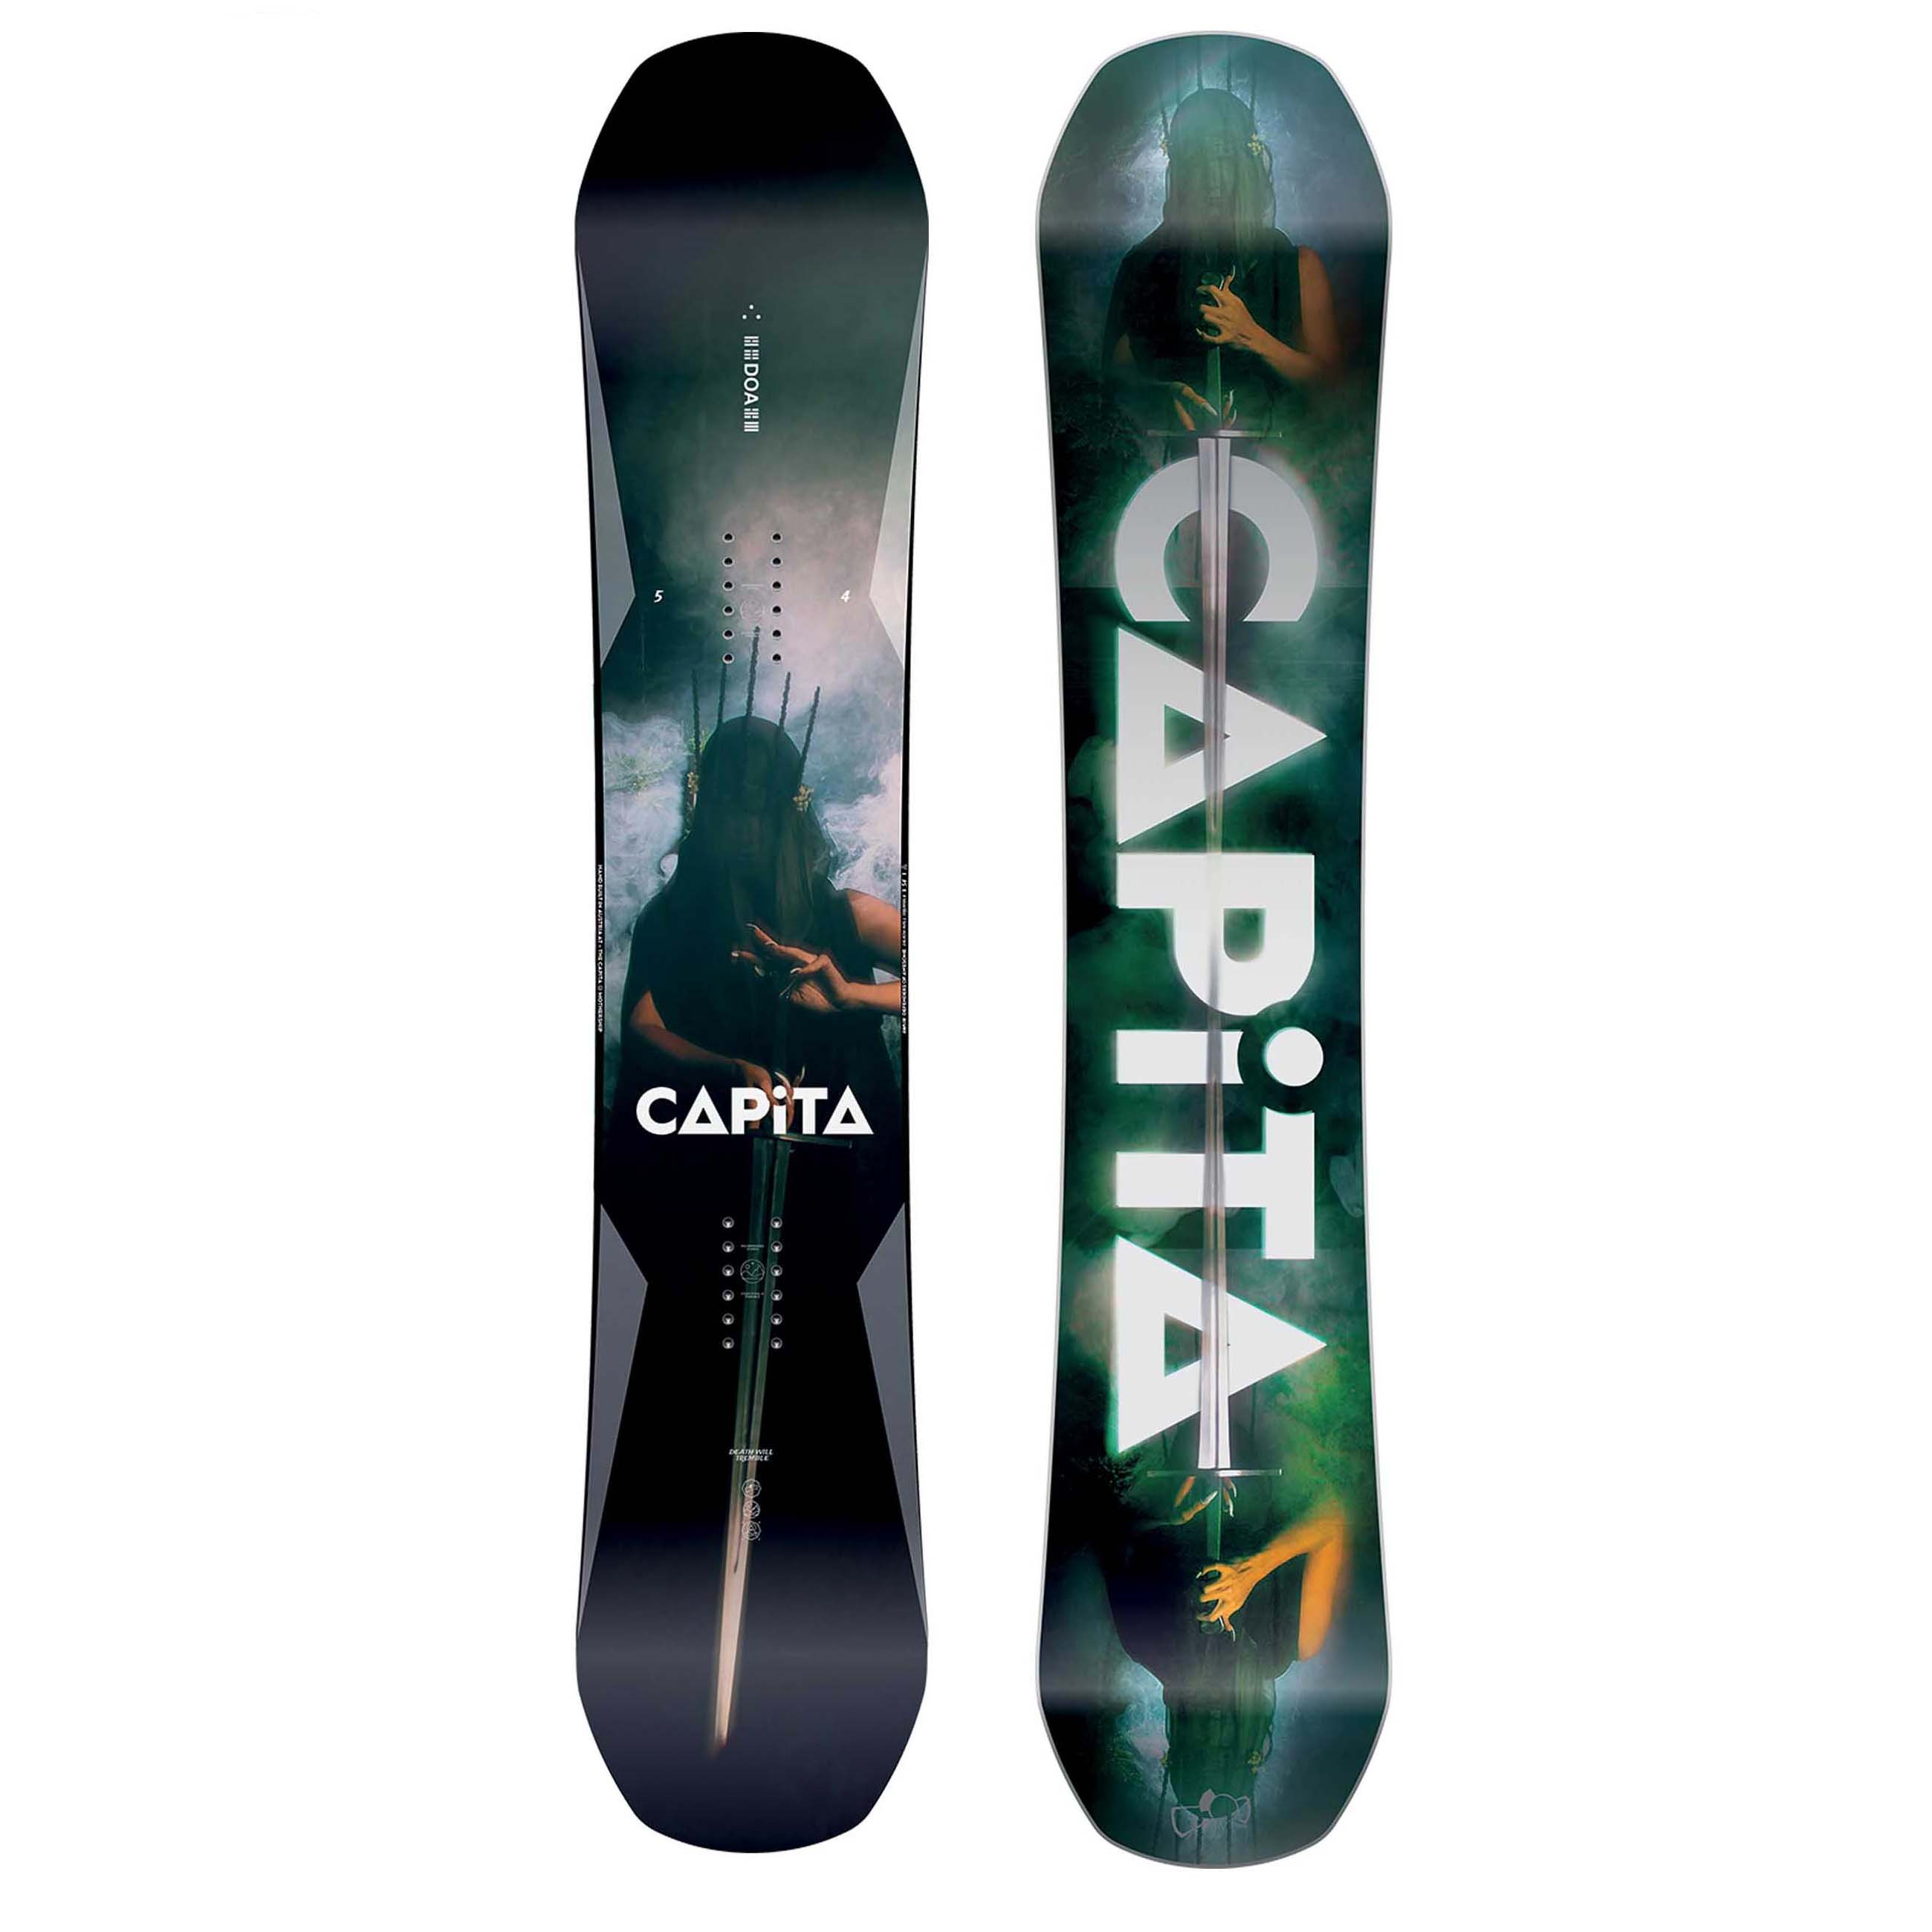 8accb09089b CAPiTA Defenders of Awesome D.o.a 2019 Snowboard 154cm for sale ...